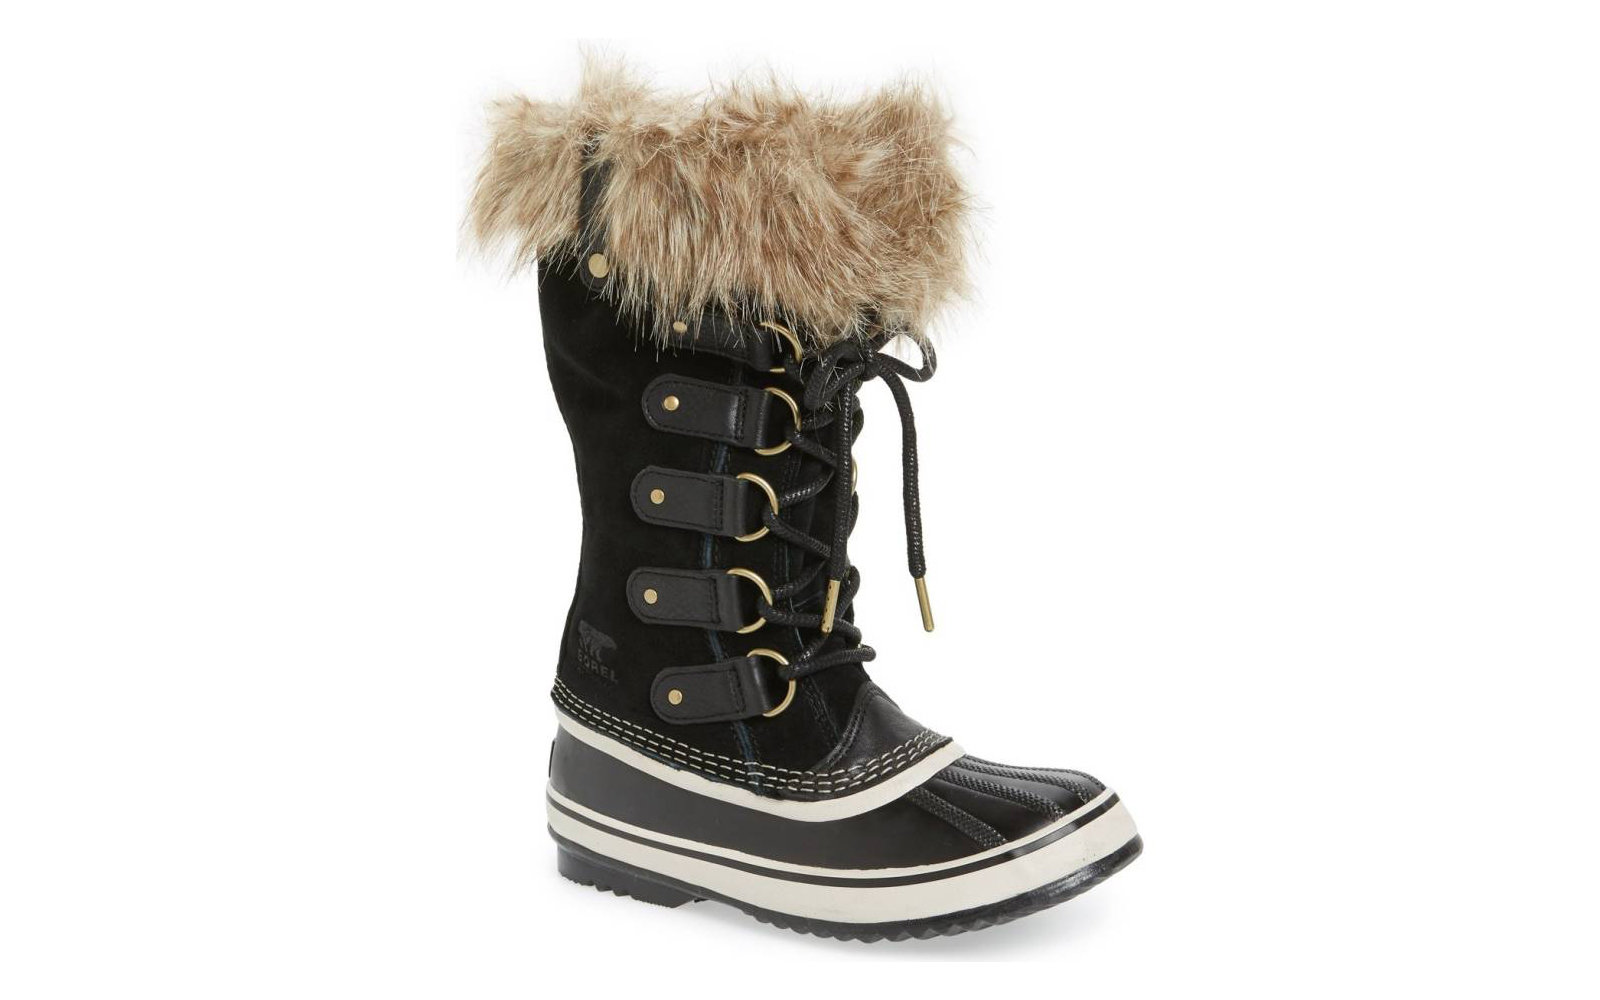 Sorel Joan of Arctic Boot: Best for Heavy Snowfall